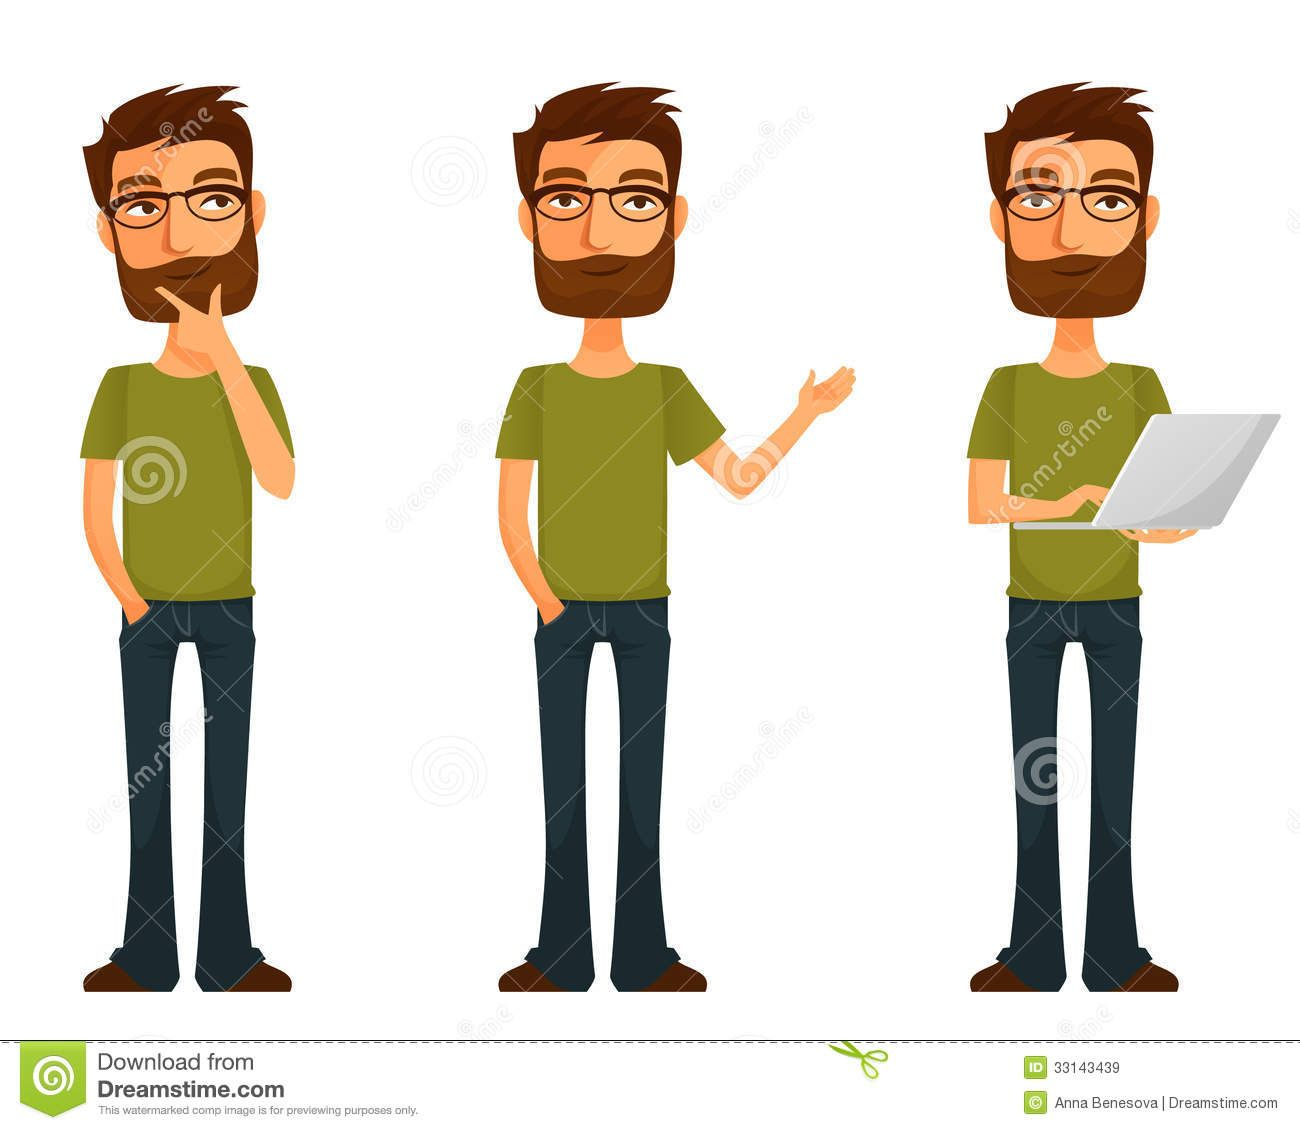 85daf6c8467 Cartoon Young Man With Beard And Glasses - Download From Over 30 Million  High Quality Stock Photos